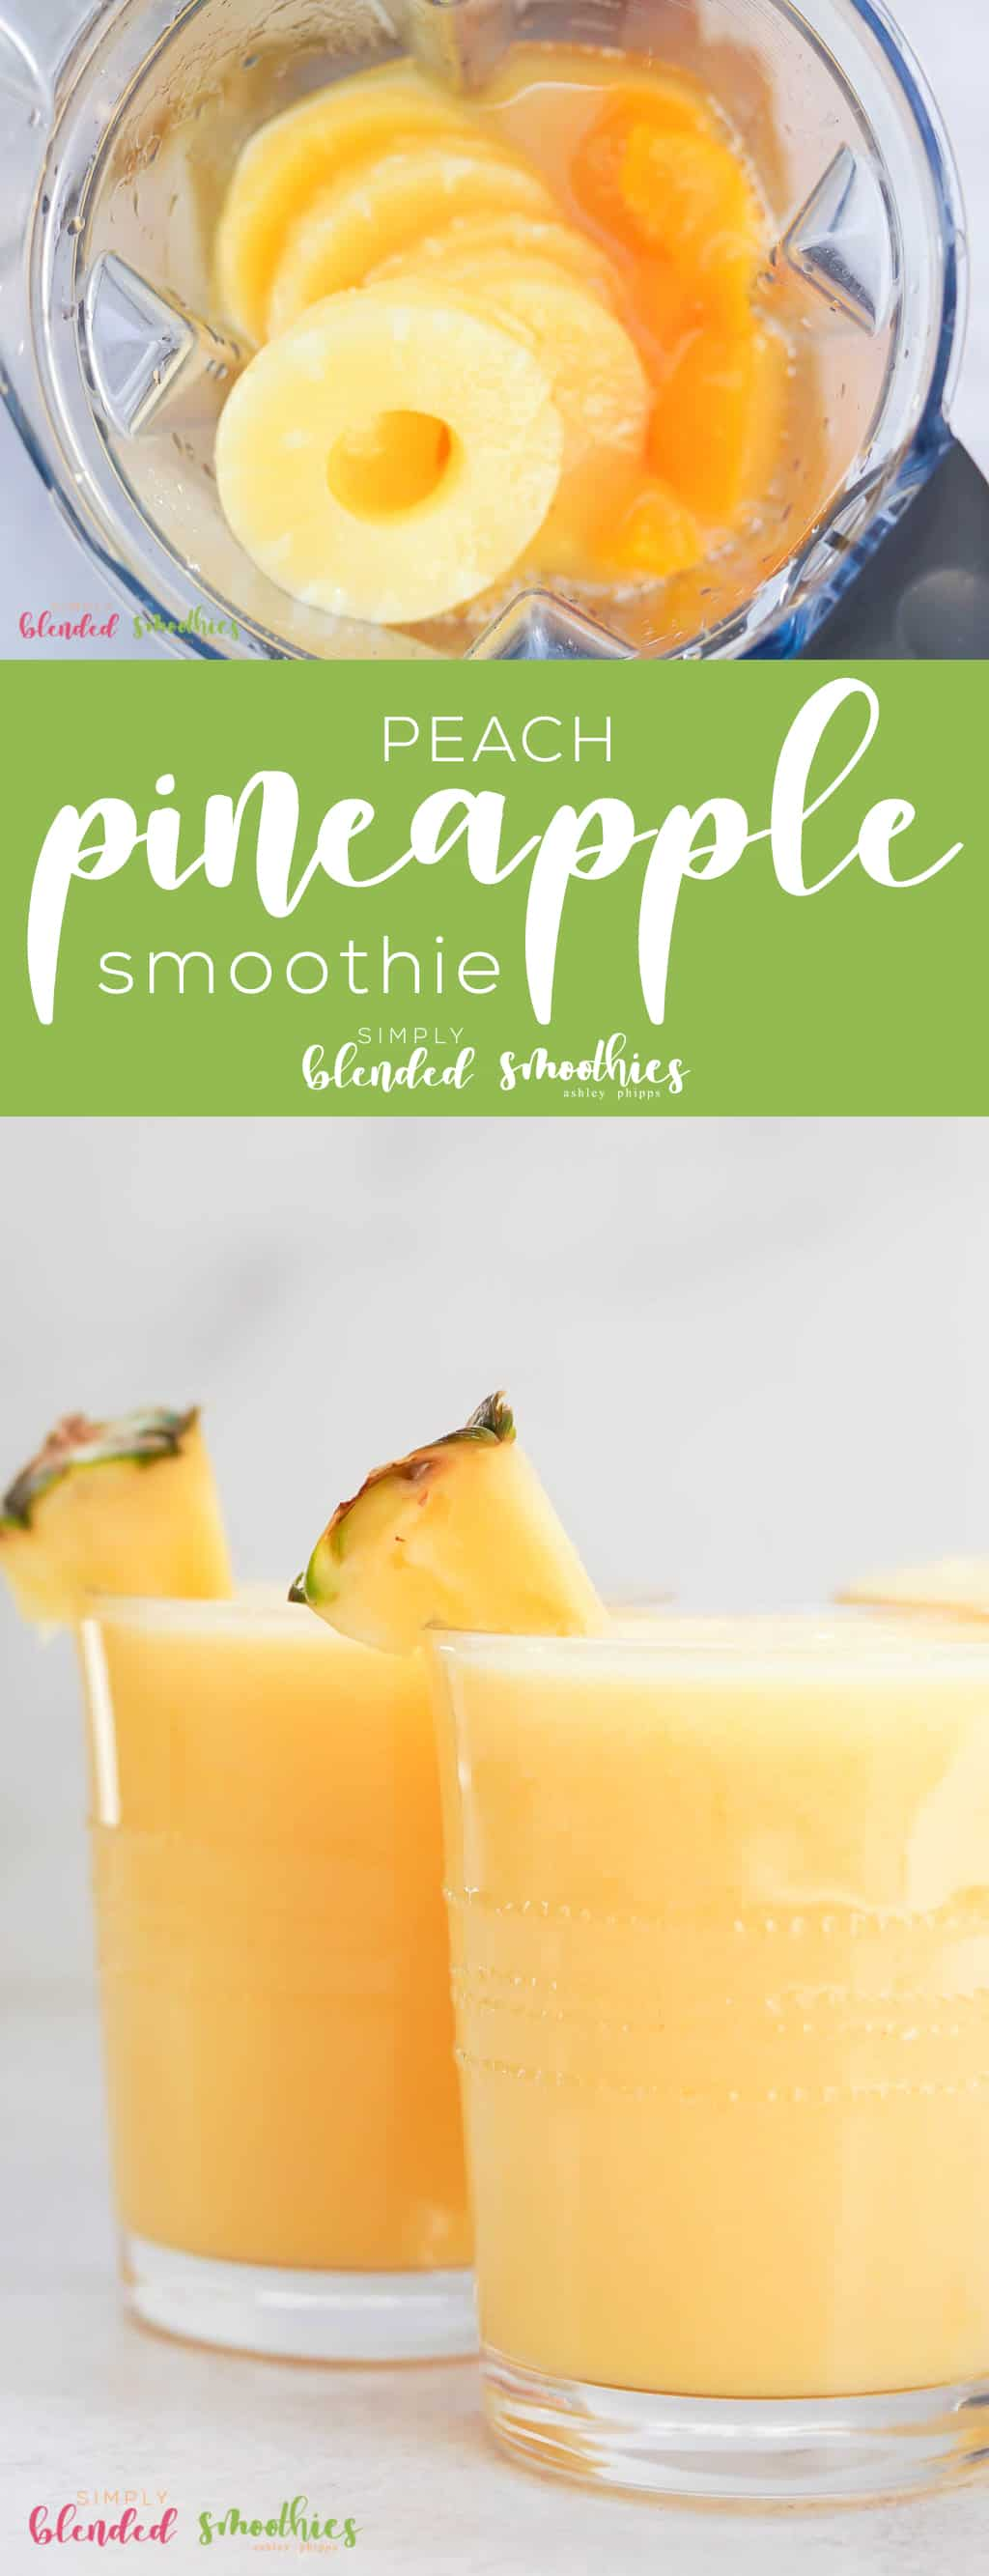 This Peach Pineapple Smoothie is a delicious smoothie that can be made with fresh frozen or canned fruits and is perfect for breakfast or a snack